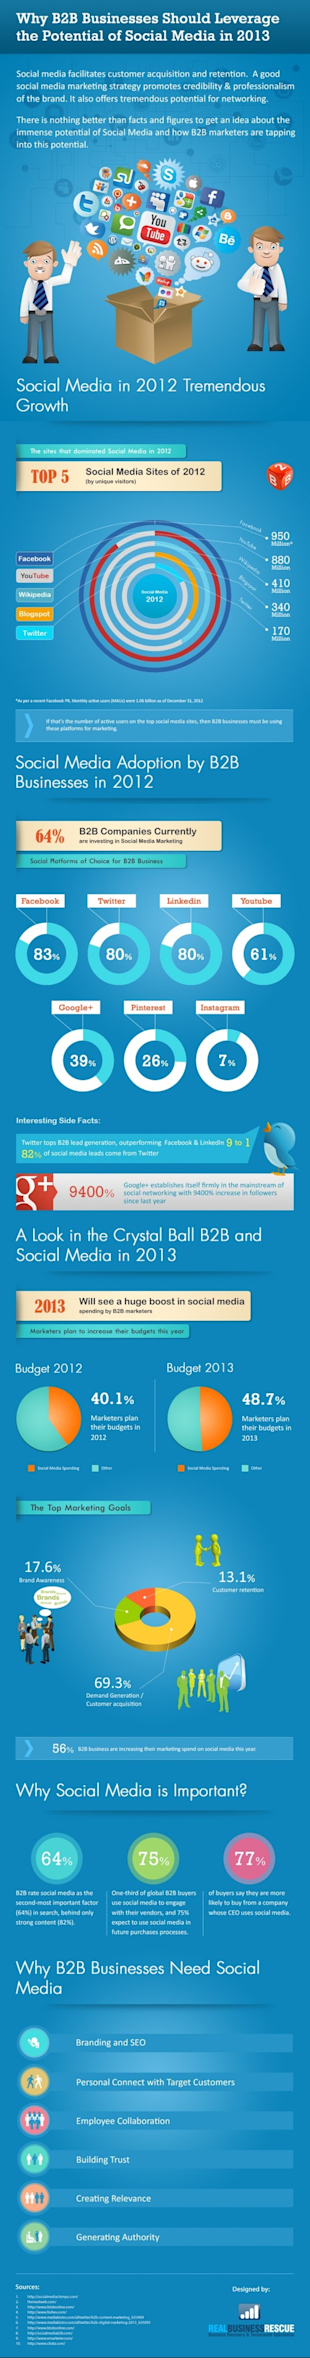 10 Infographics To Get You Excited About B2B Social Media image 6 Why B2B businesses should leverage the potential of social media in 2013 resized 600